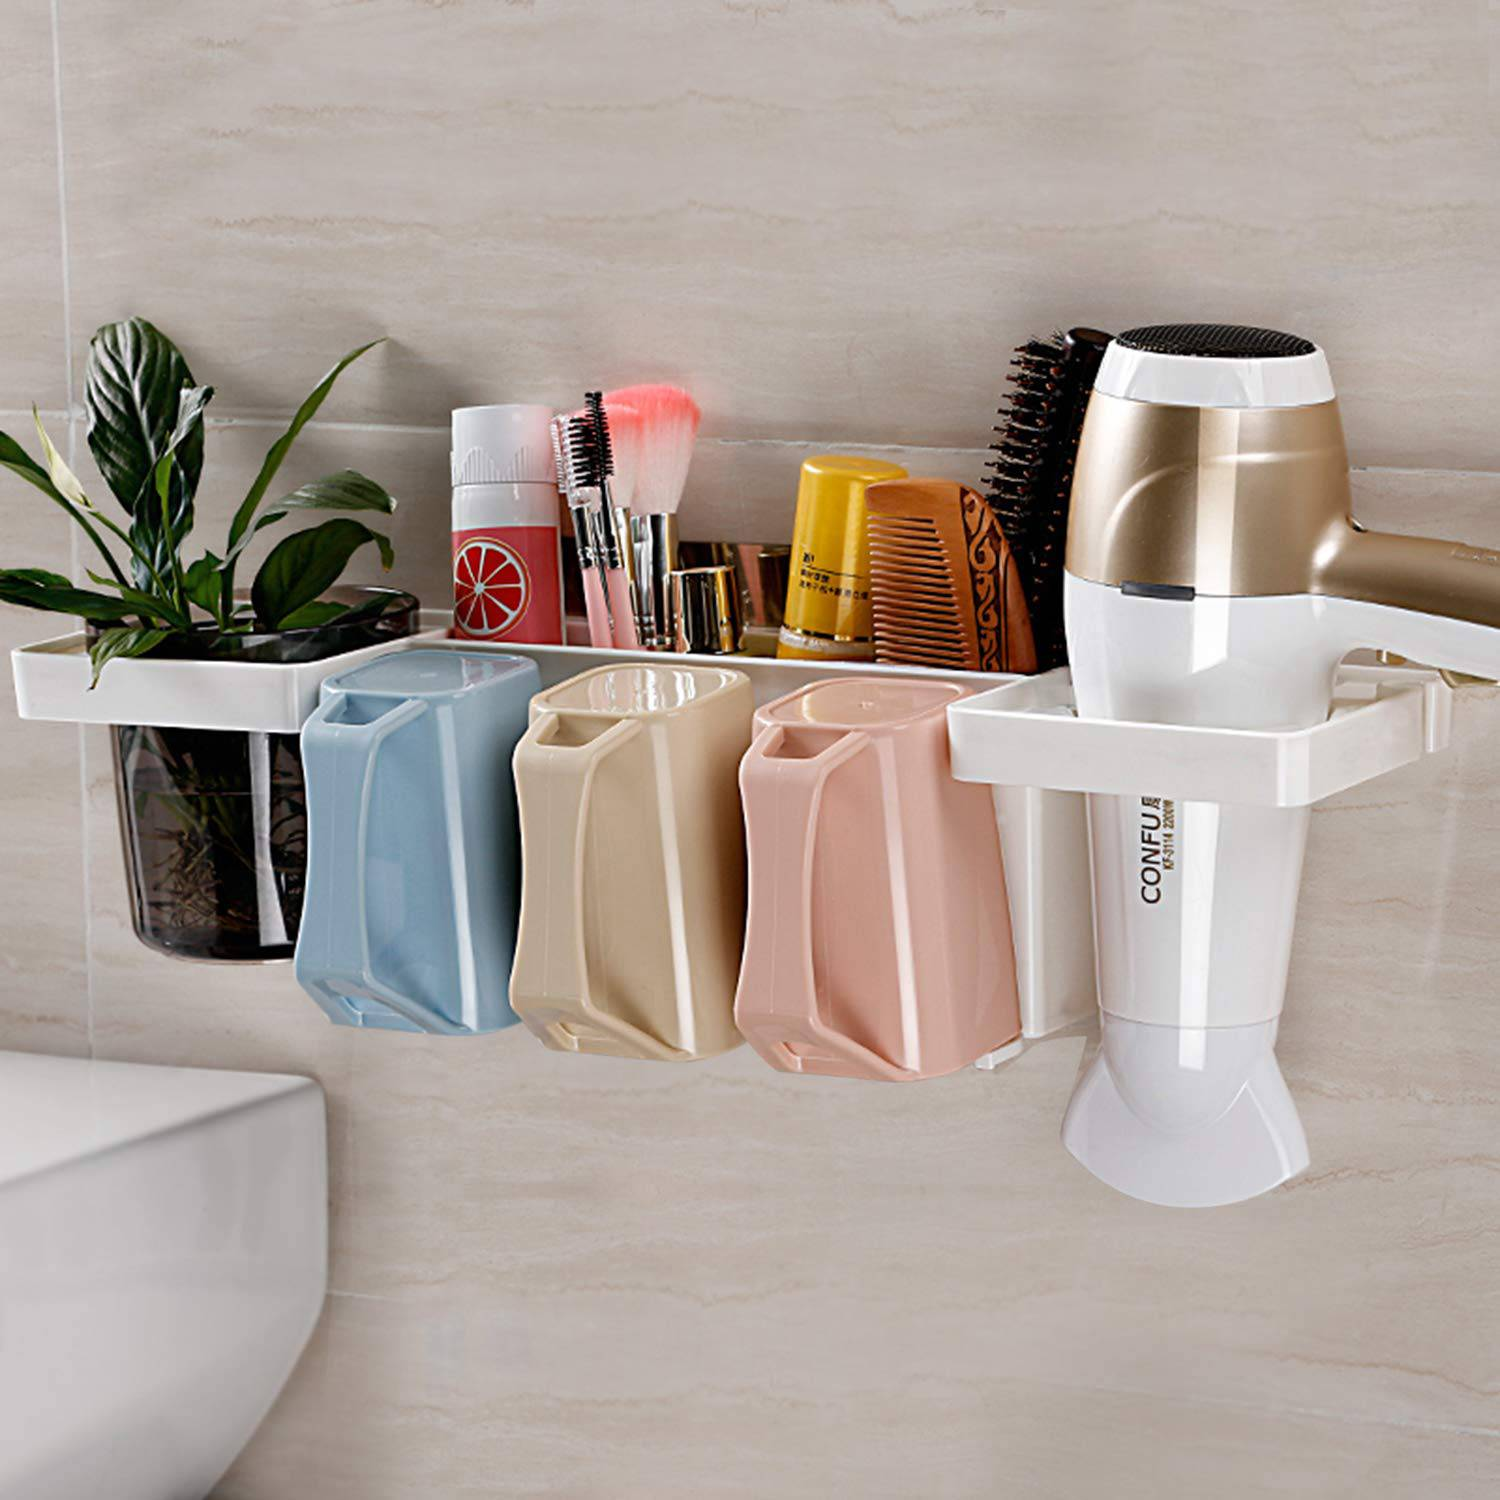 AND009236. Bathroom Organizer for Toiletries